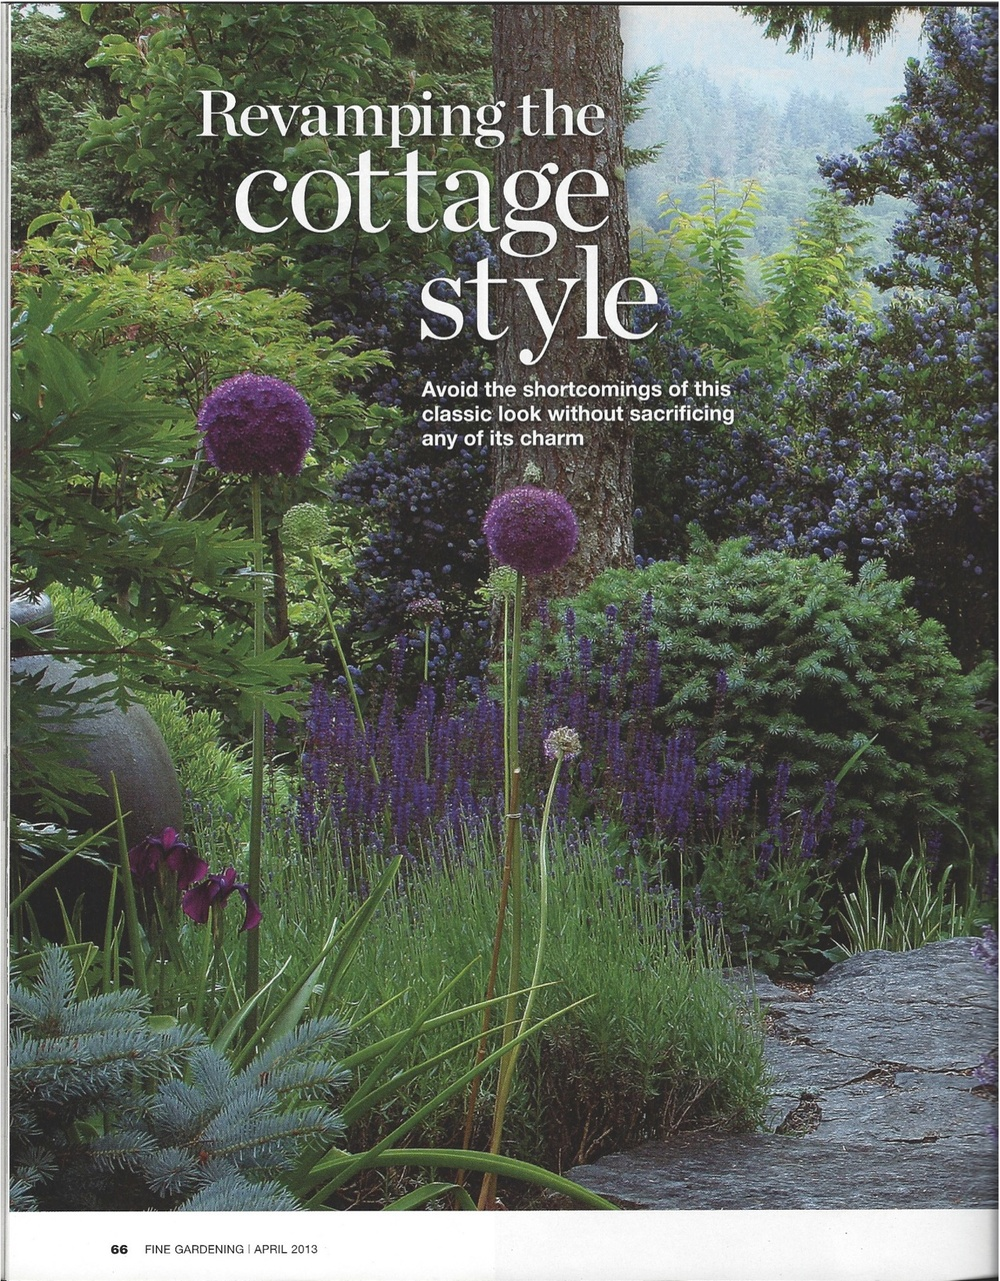 Fine Gardening 'Revamping the Cottage Style' 2013